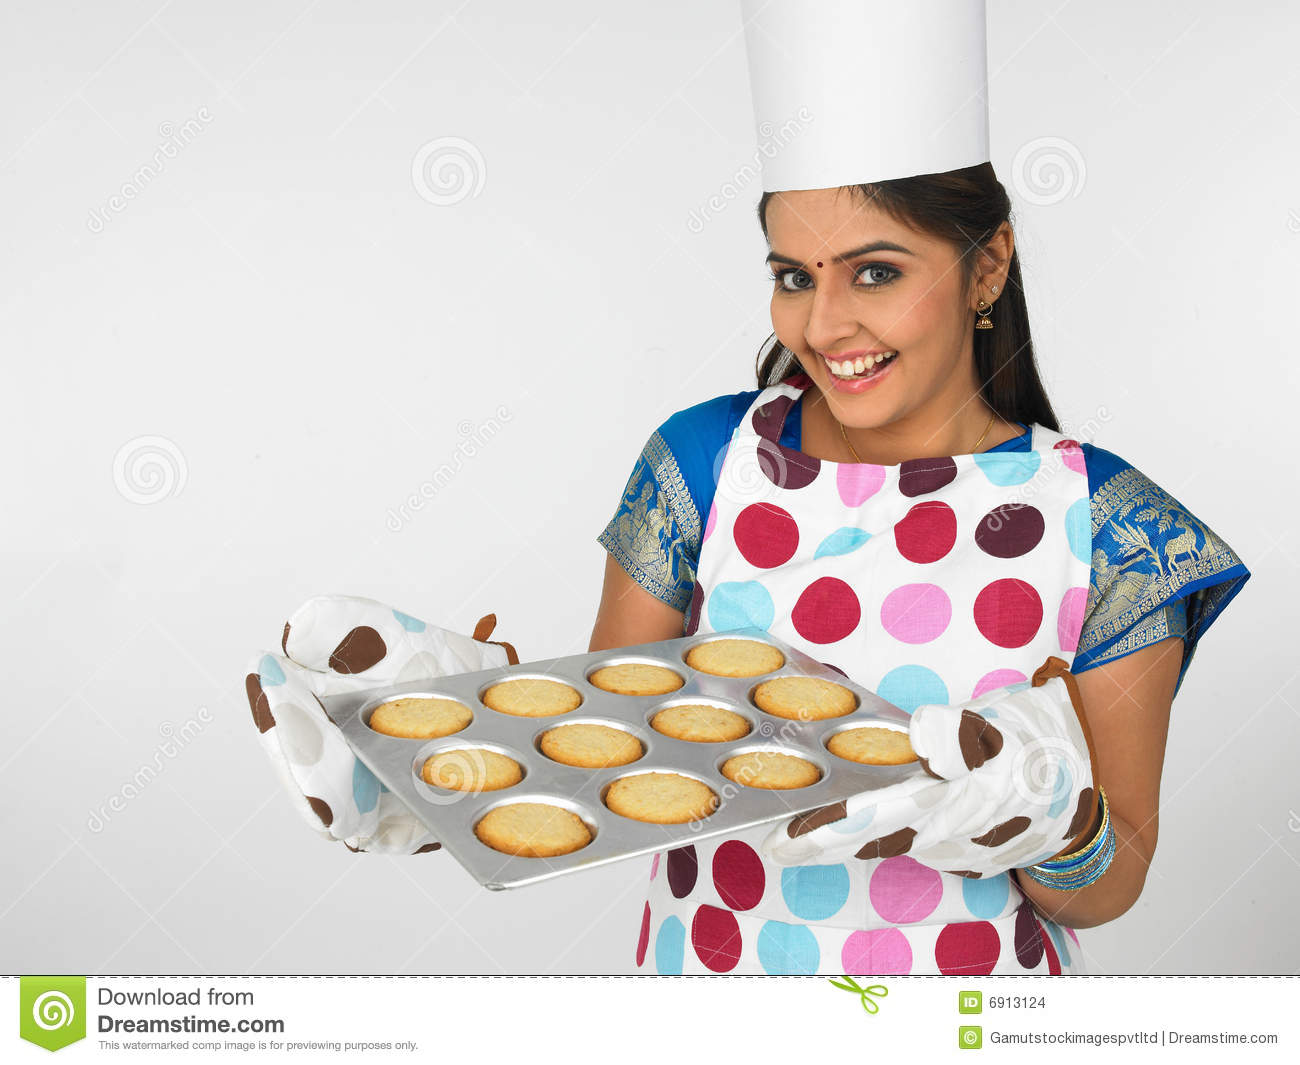 Indian lady chef clipart vector free Indian lady chef clipart - ClipartFox vector free